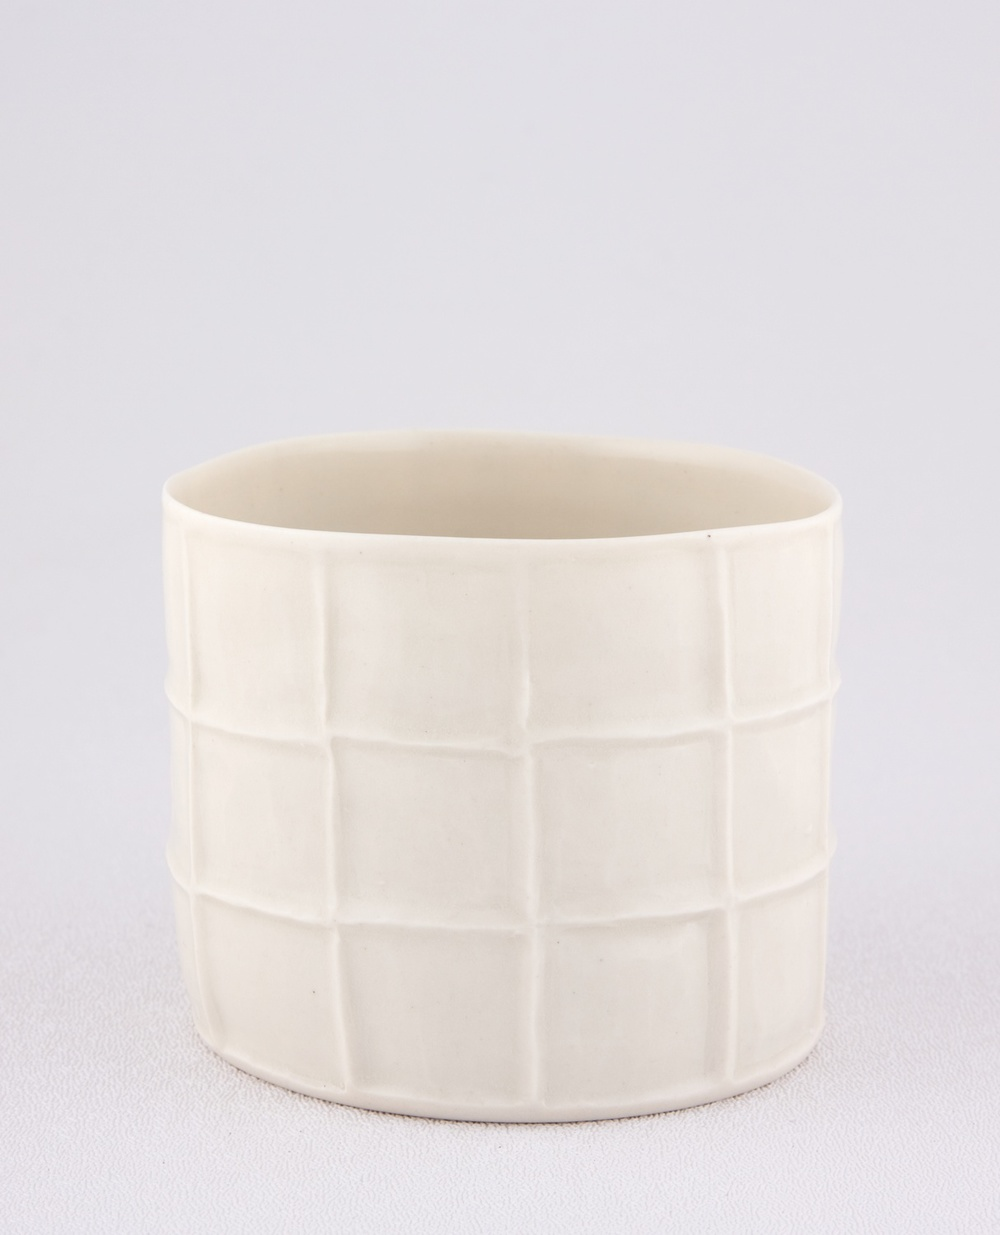 Shio Kusaka  Untitled (cup)  2009 Porcelain 2 ¾h x 3 ¼w in SK011